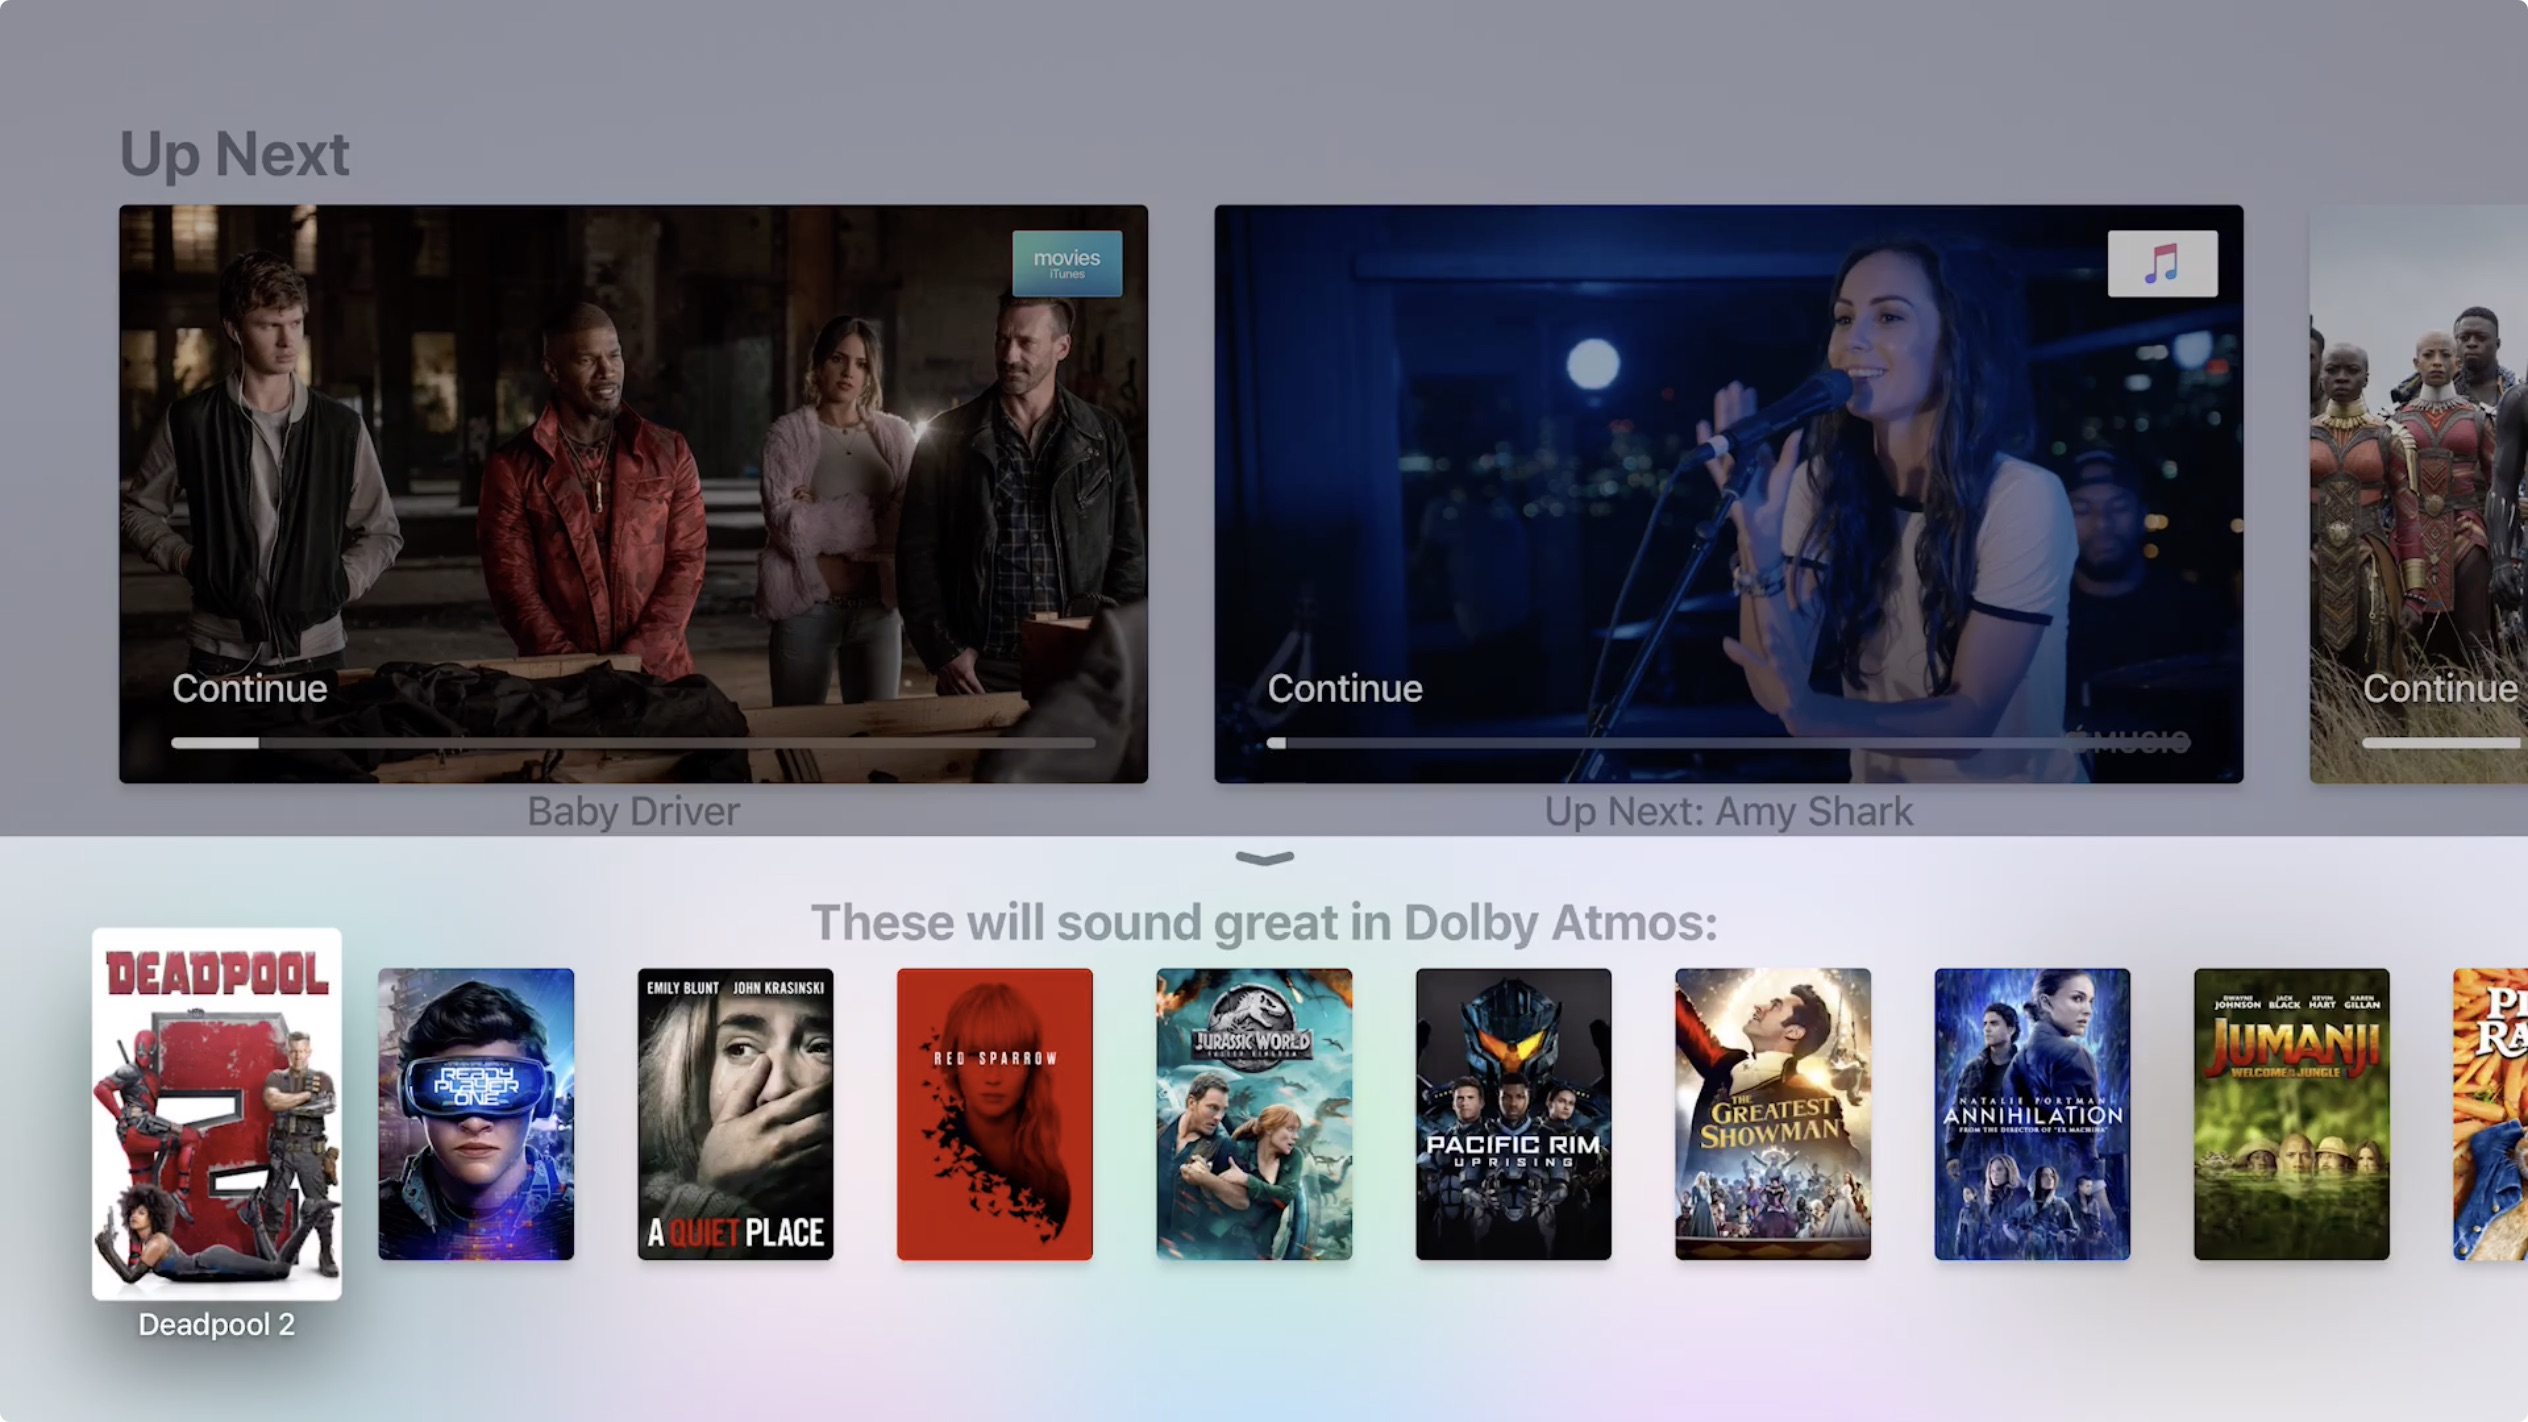 tvos 12 now available for apple tv 4 and apple tv 4k brings dolby atmos audio screensaver updates more